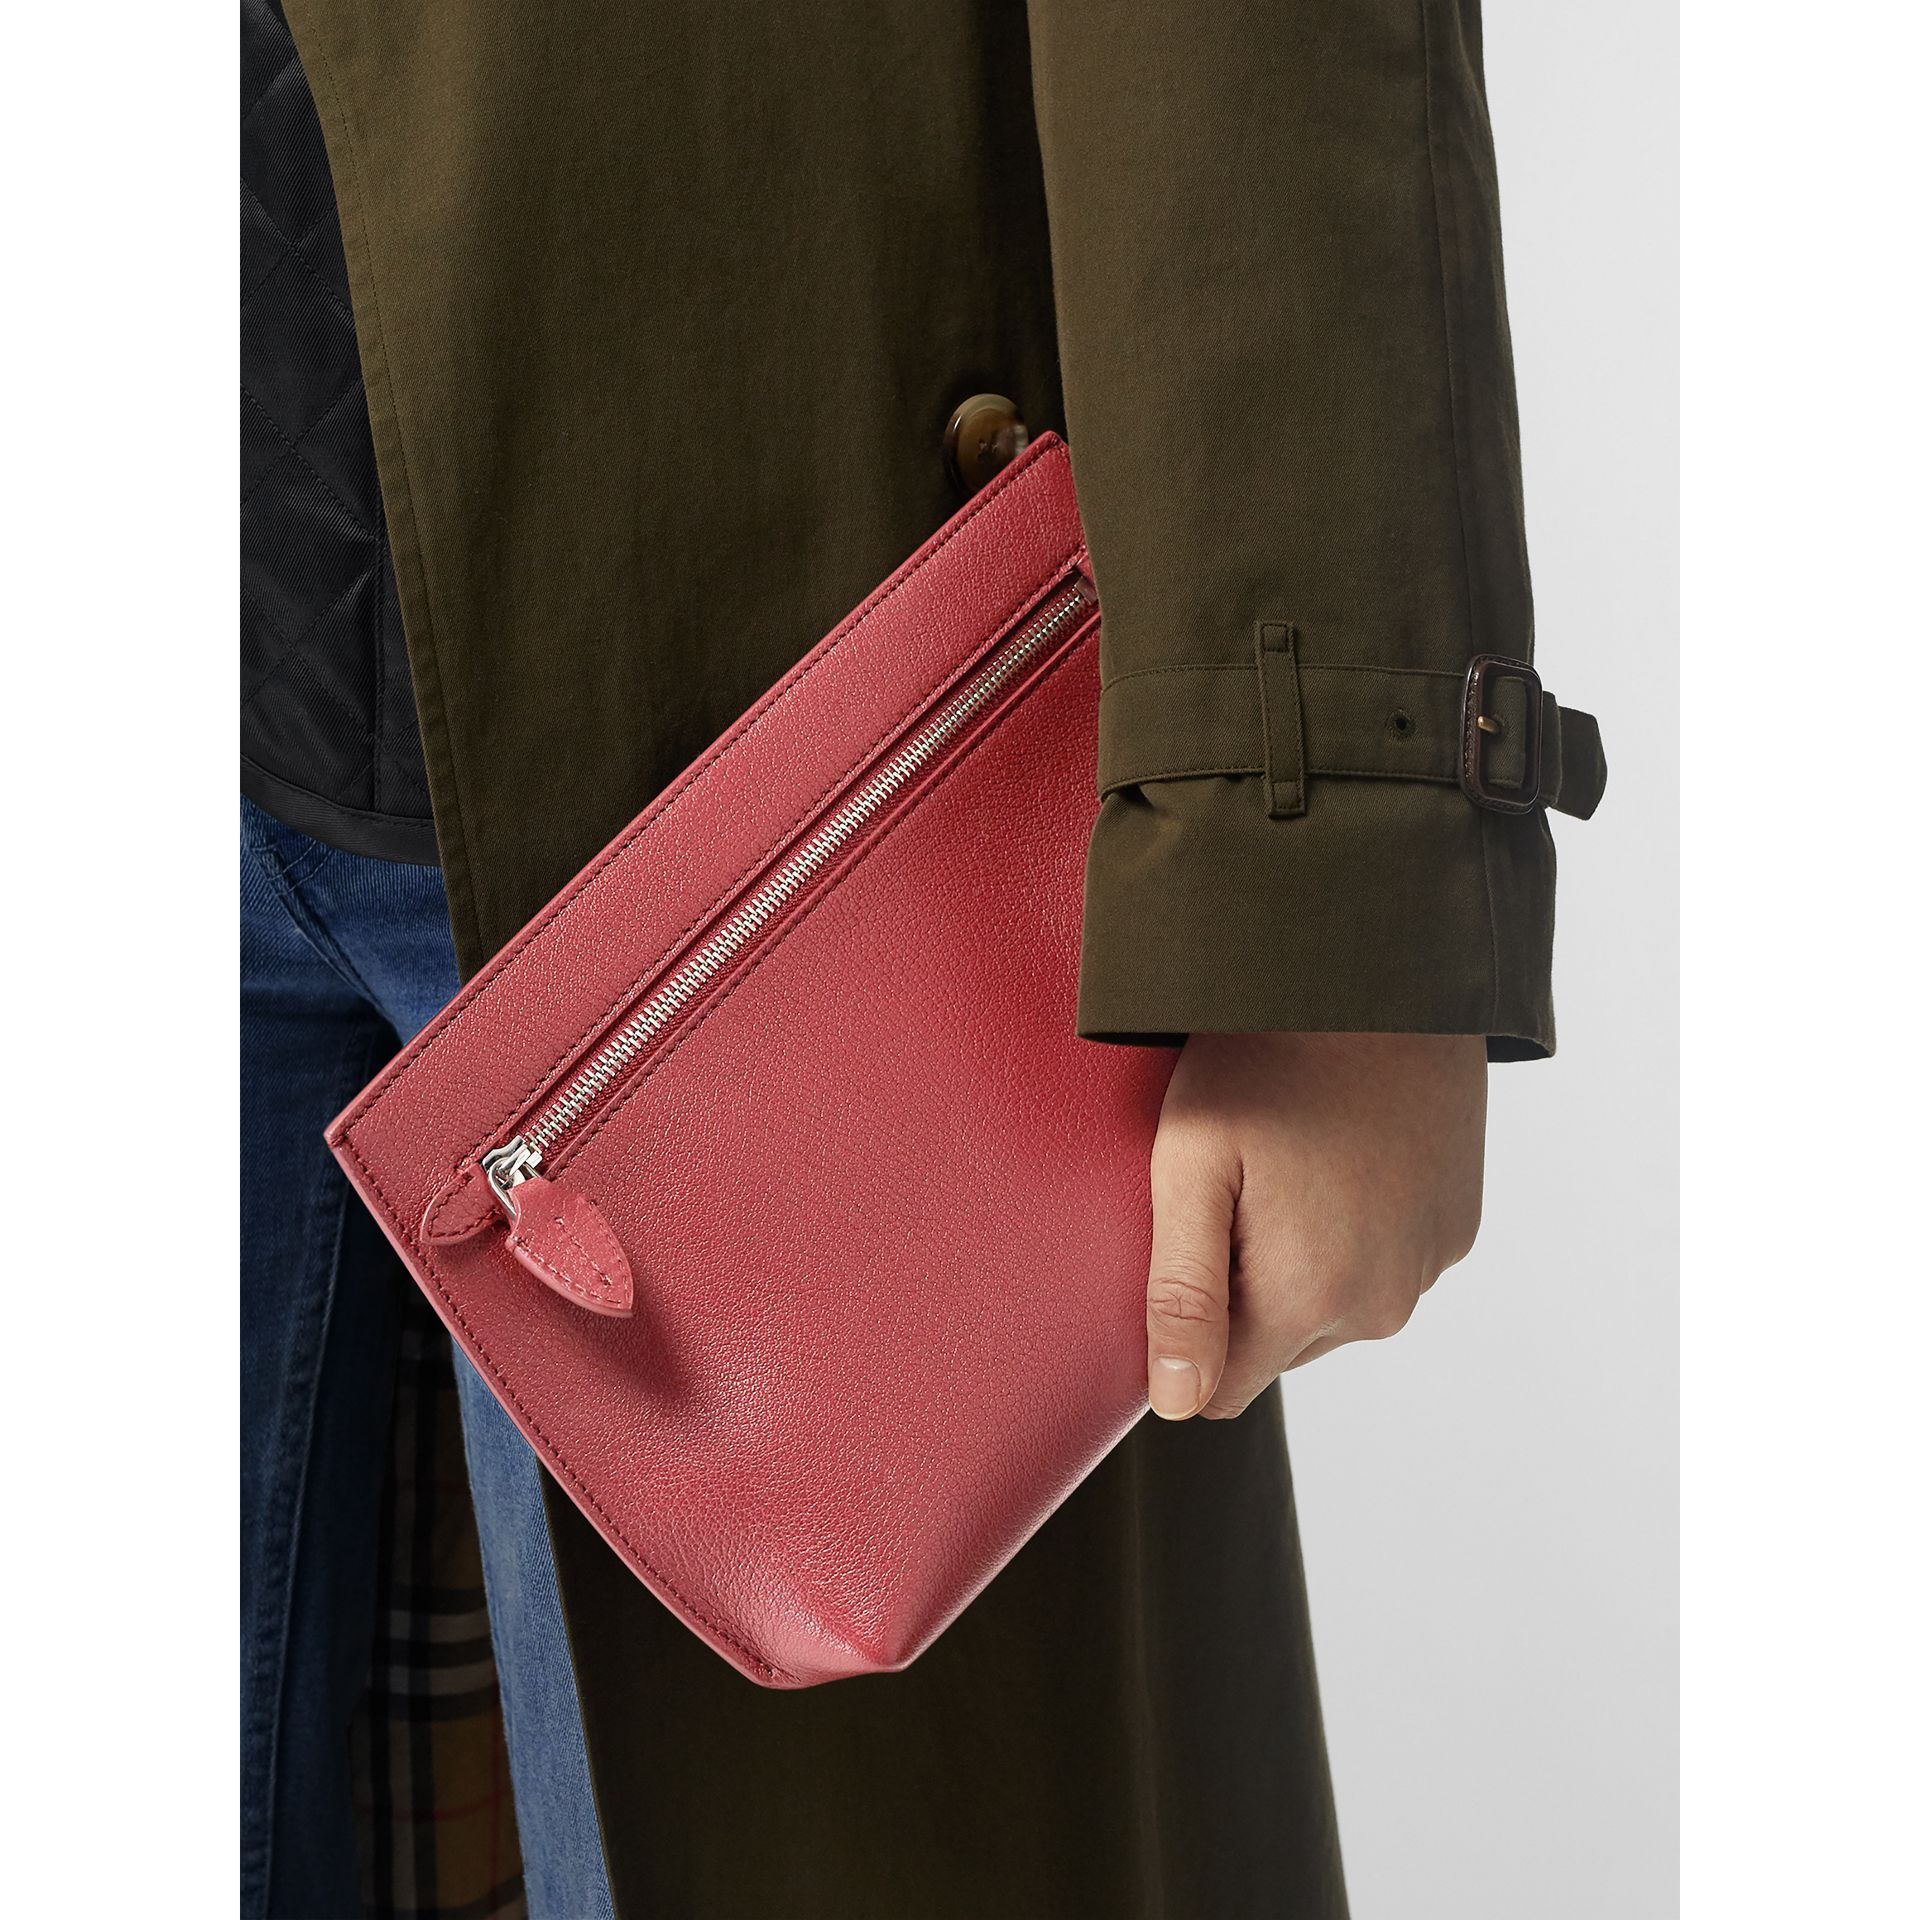 Grainy Leather Wristlet Clutch in Crimson - Women | Burberry United States - gallery image 3